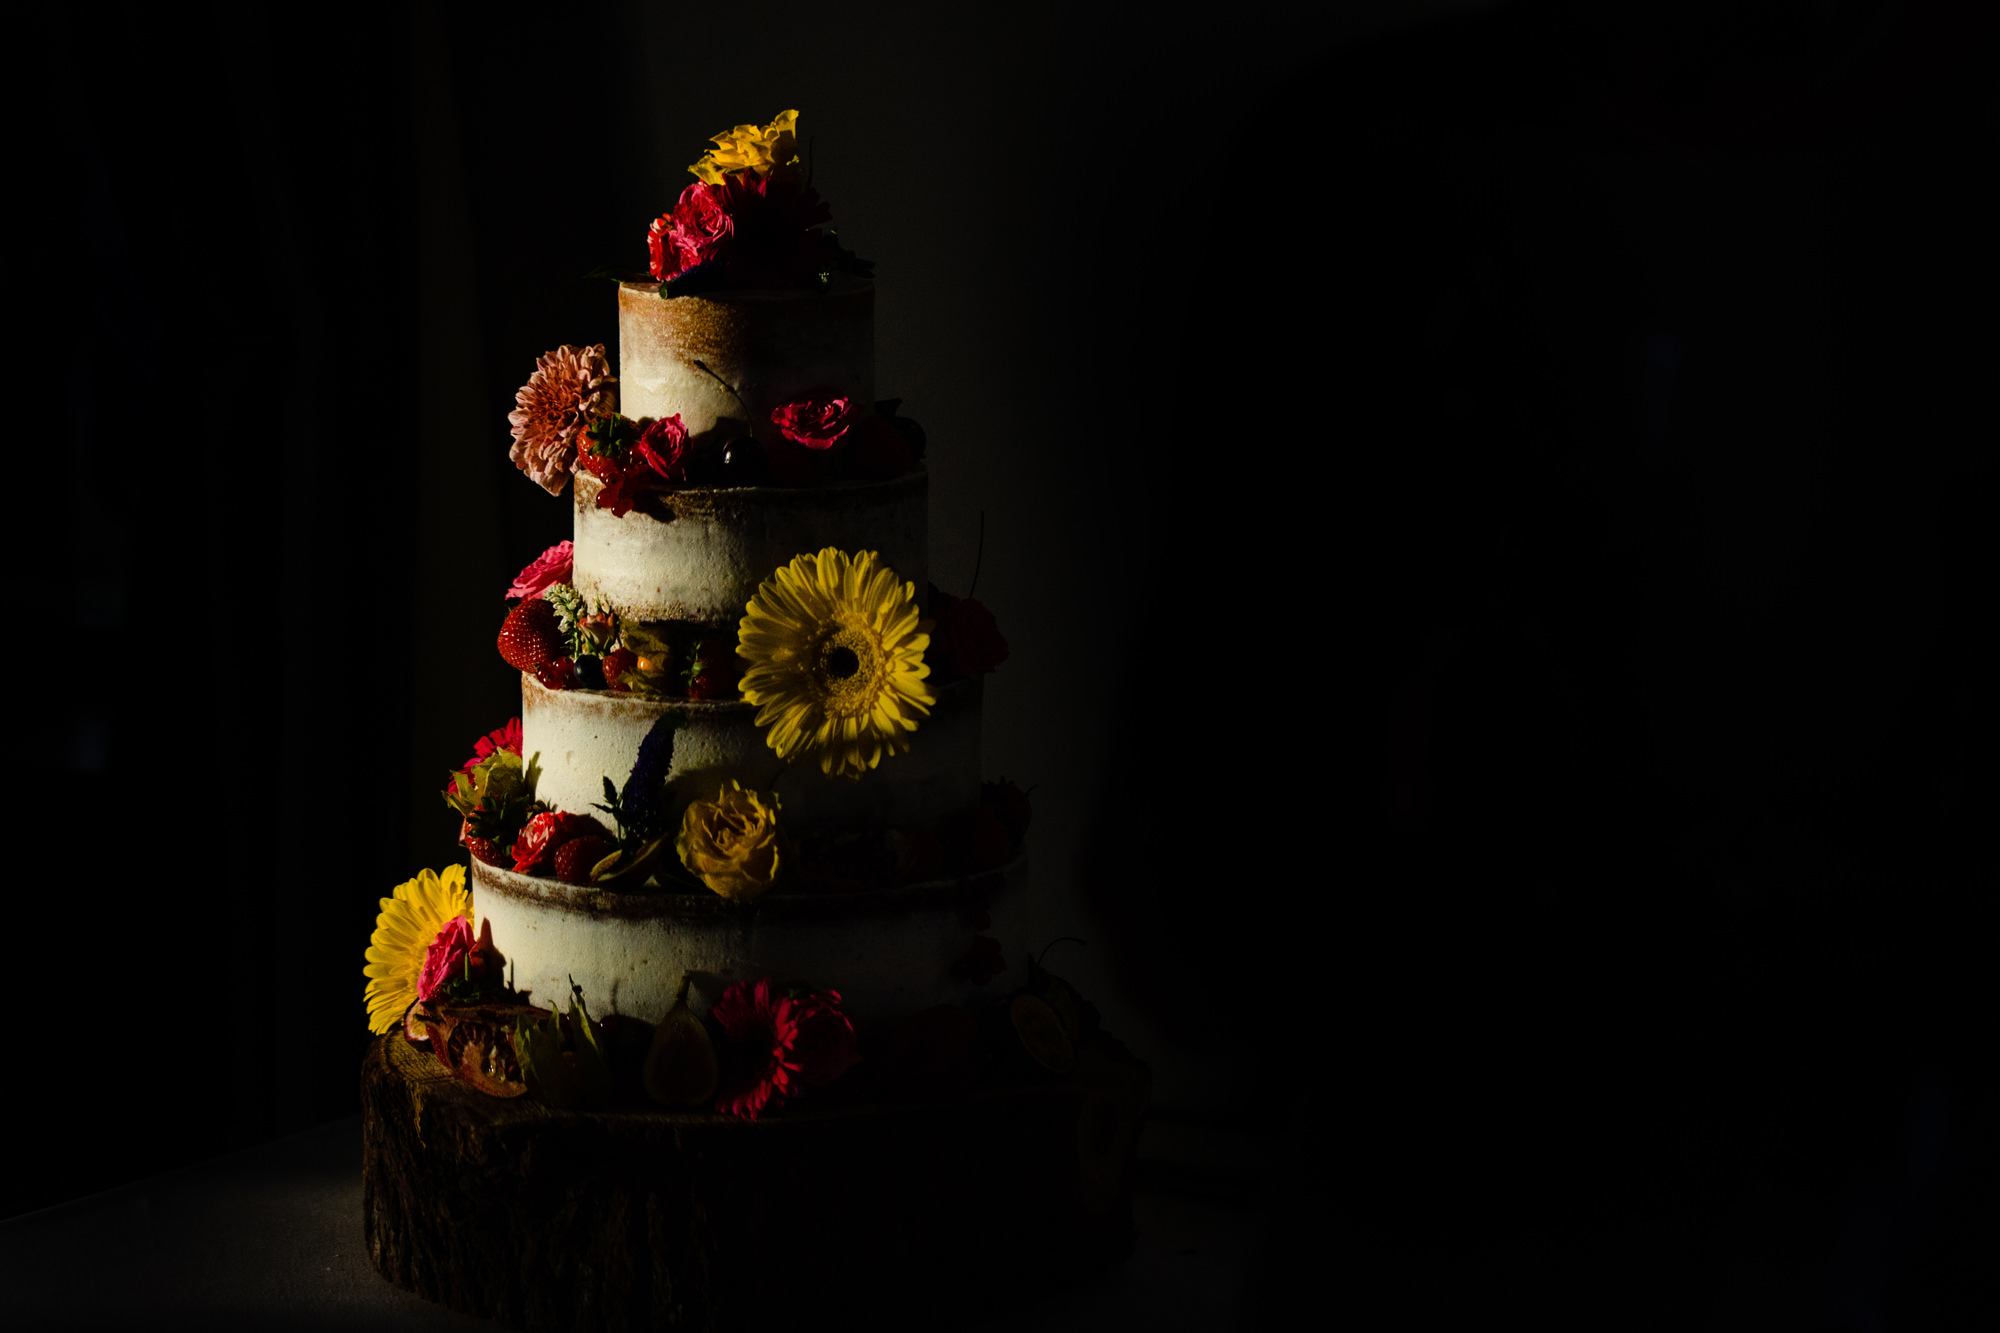 wedding cake lit by the setting sun.